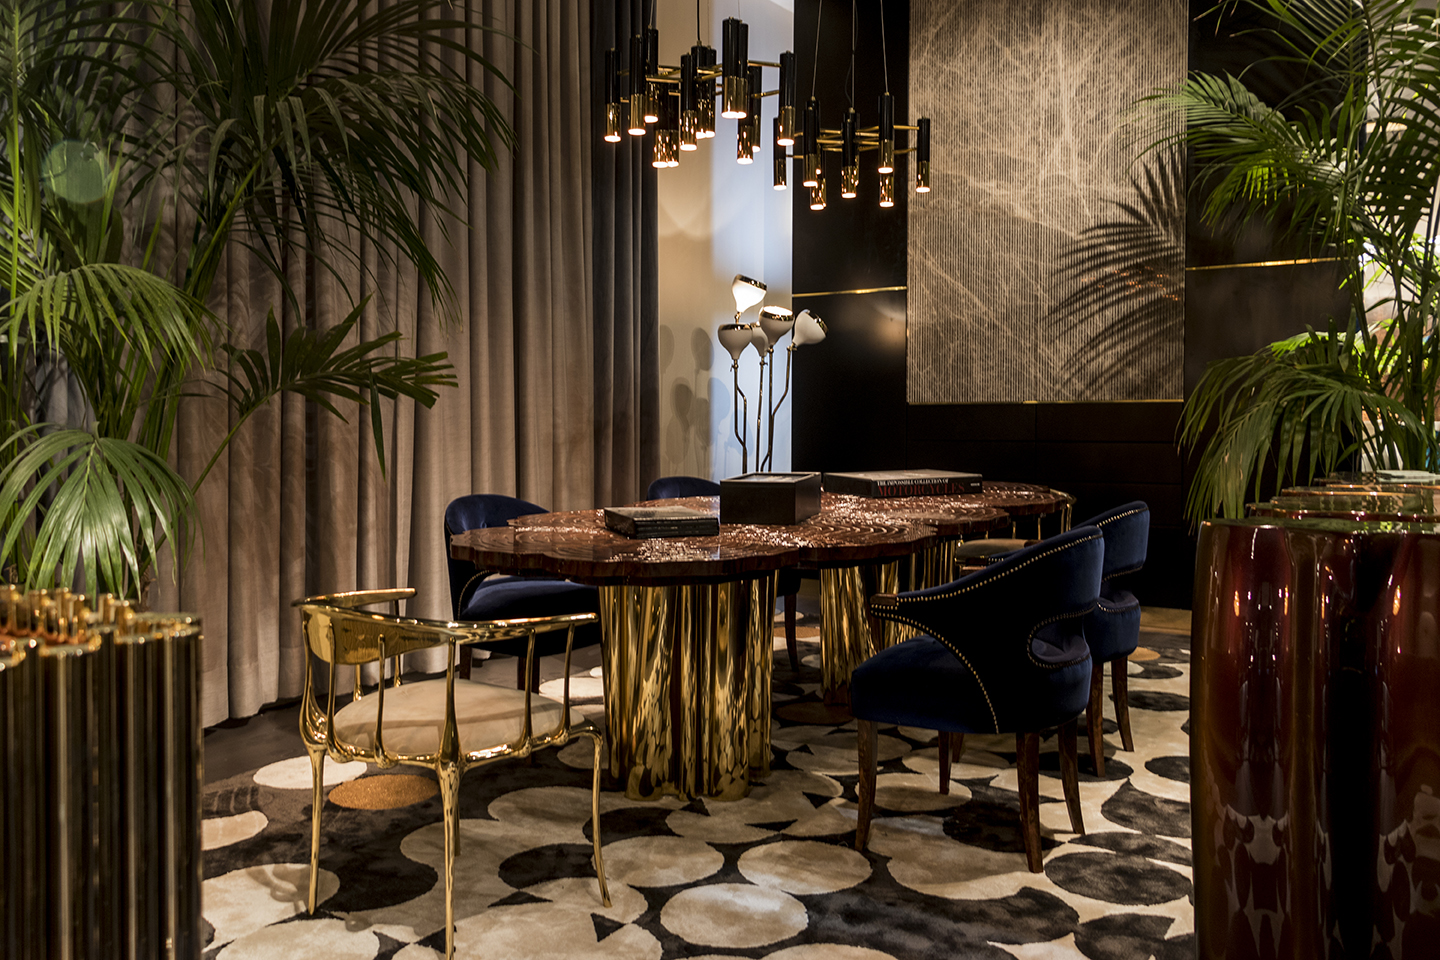 boca do lobo at Salone del Mobile 2019 salone del mobile 2019 SALONE DEL MOBILE 2019: EVERYTHING THAT YOU ARE MISSING IMG 9990 1